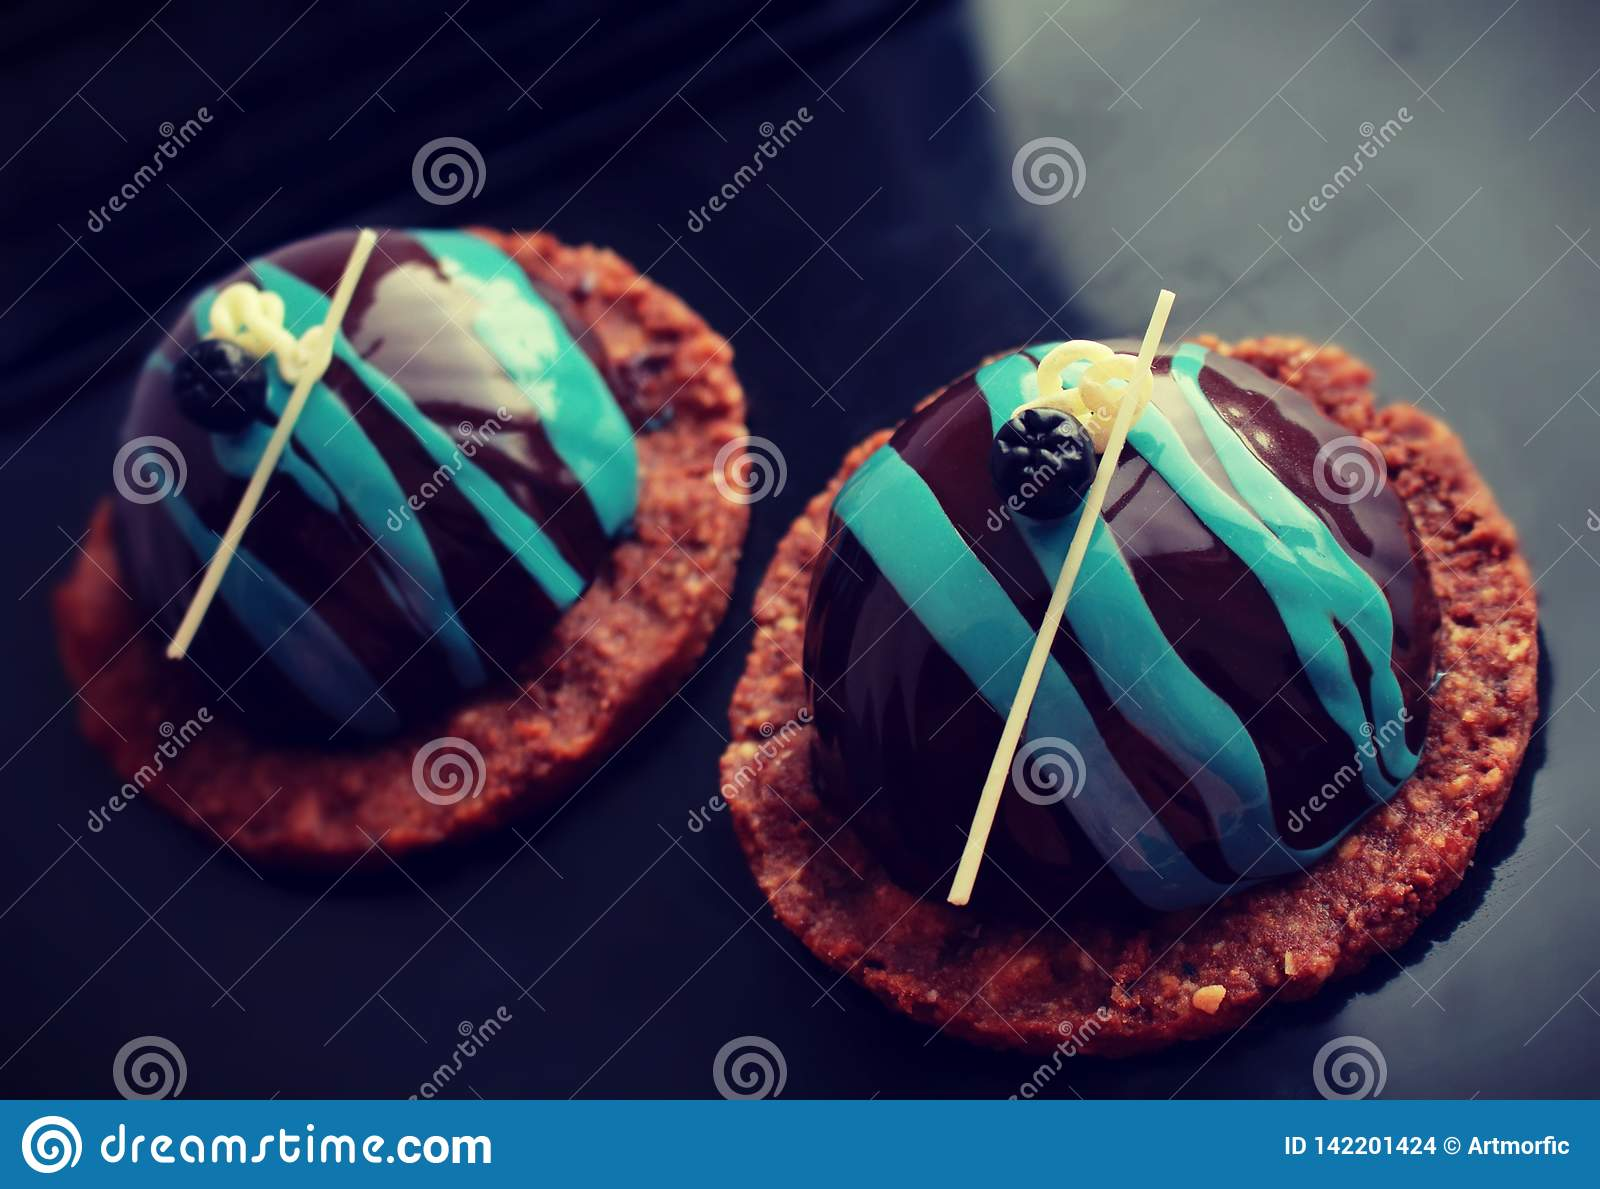 Black and blue desserts on cookie base